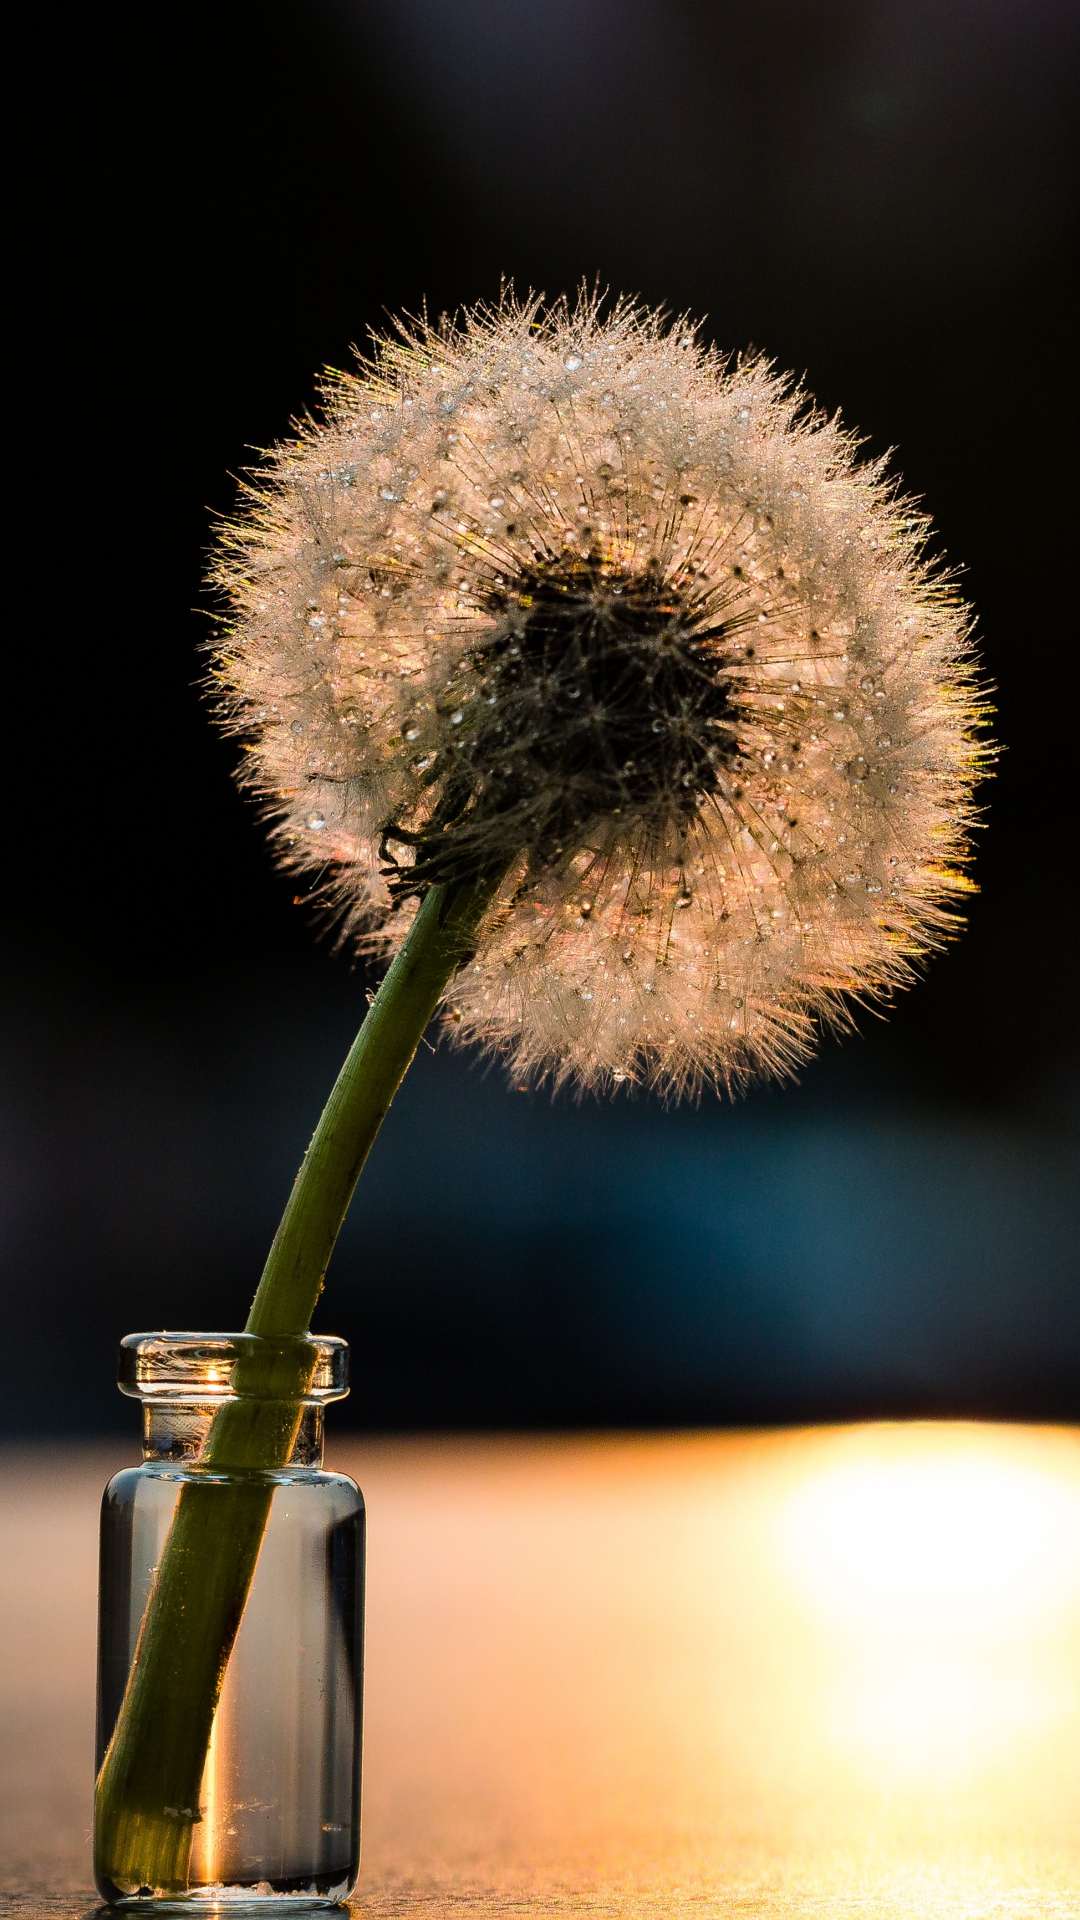 iphone wallpaper dandelion light Dandelion